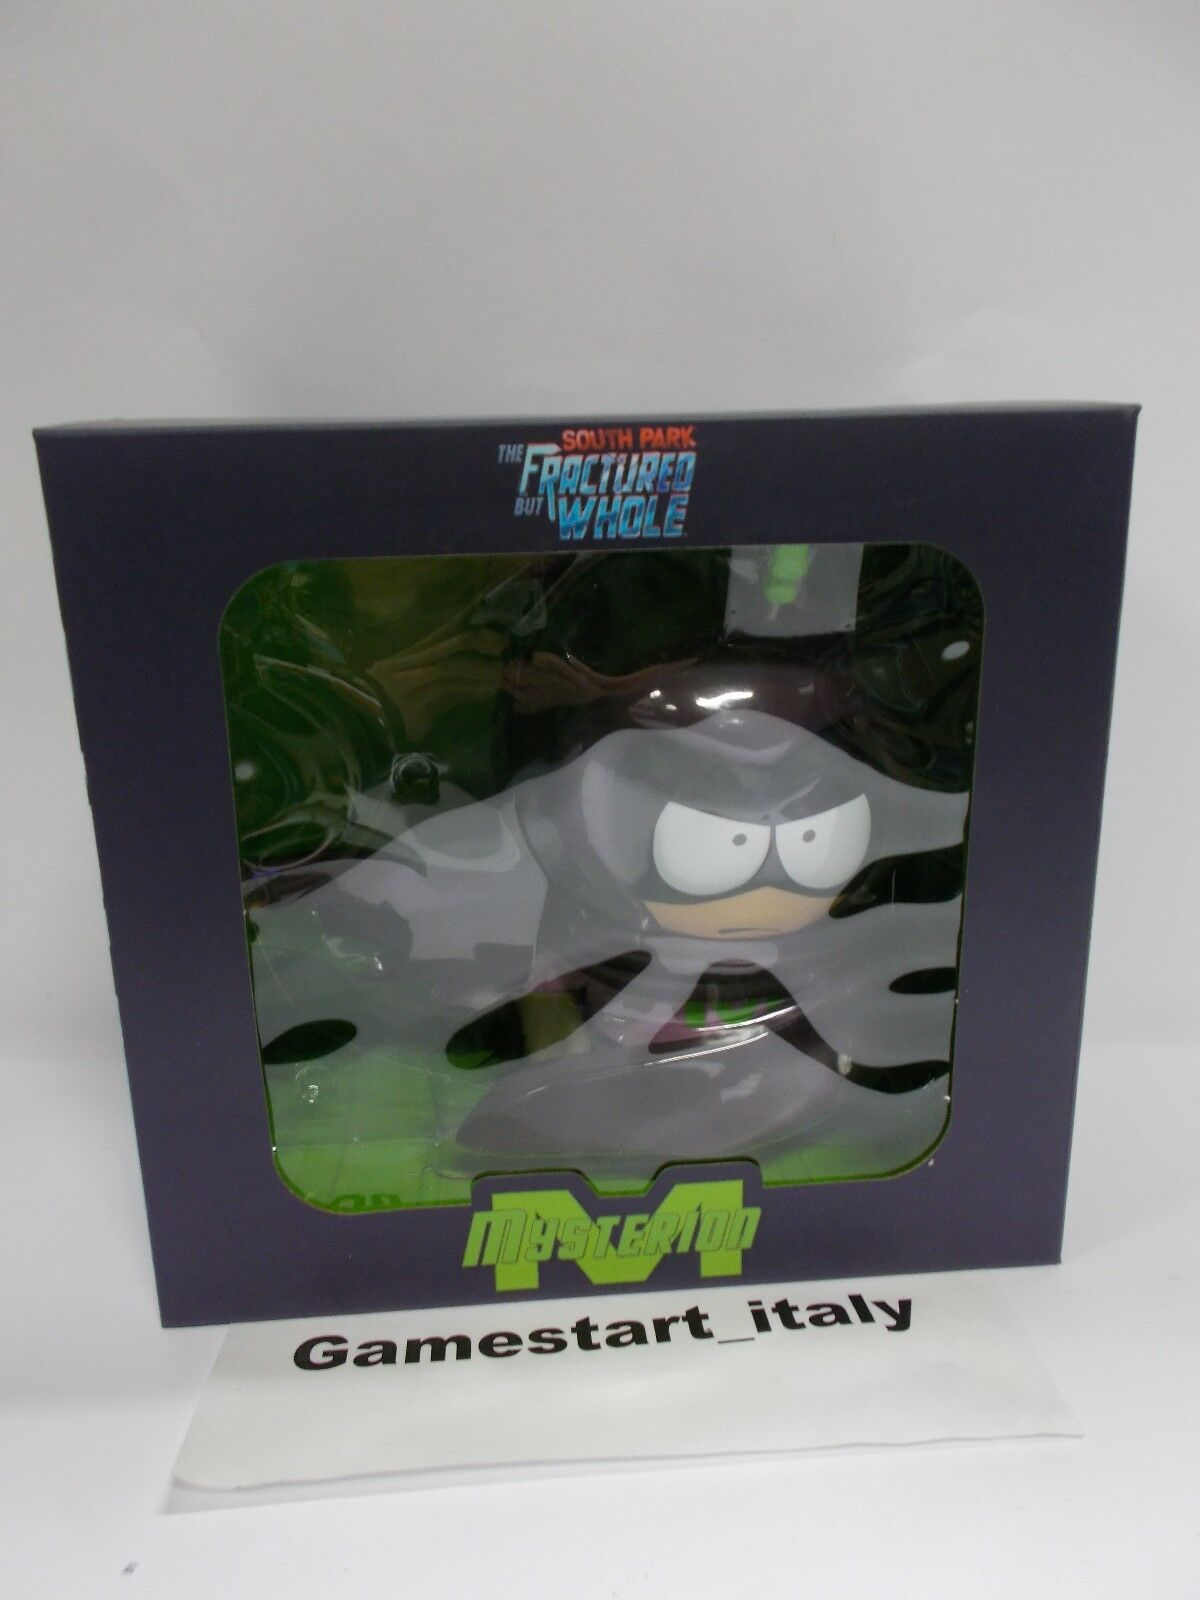 ACTION FIGURE SOUTH PARK THE FRACTUROT BUT WHOLE - MYSTERION - UBISOFT - NEW